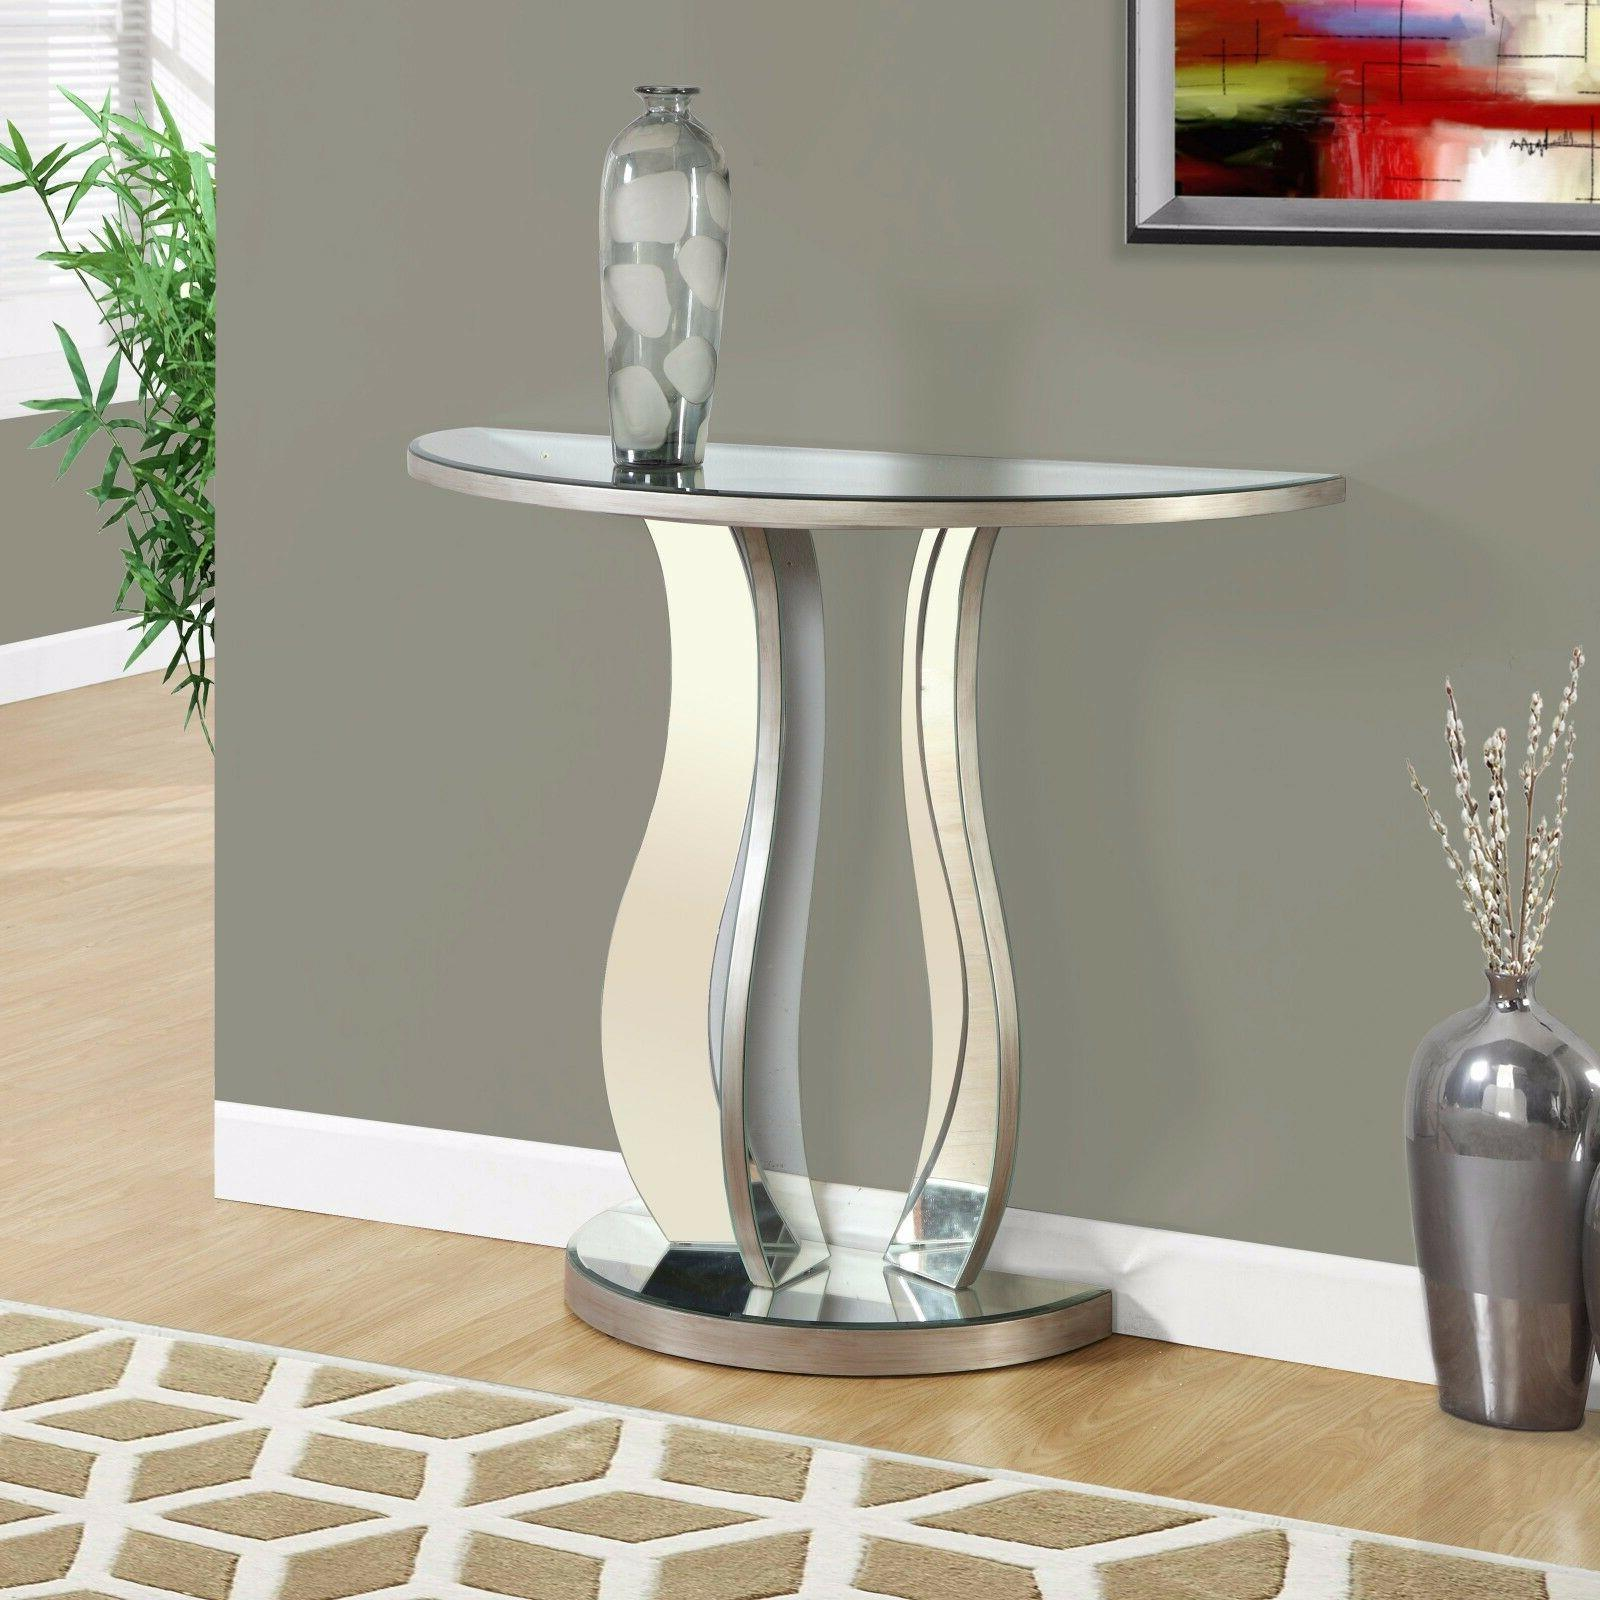 Half Oval Mirrored Console Sofa Table Silver Finish Glam Fur